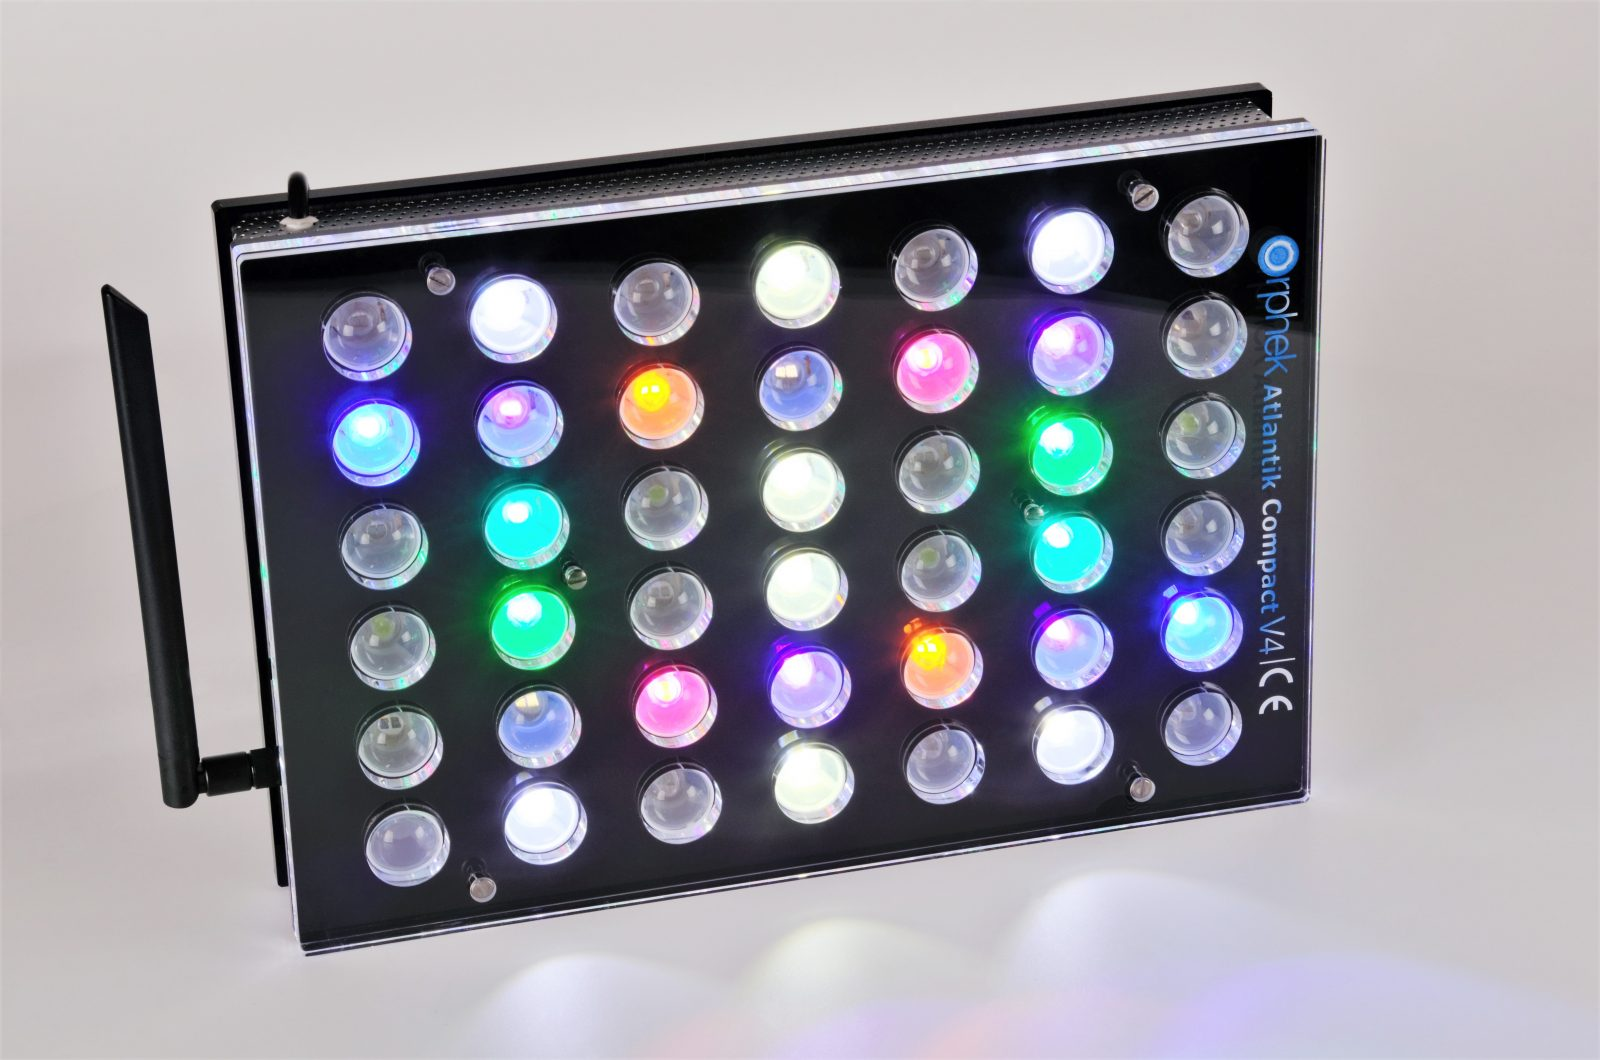 Orphek-Aquarium-LED-Lighting-Atlantik -Compact-V4-light -on -channel 1 + 3 + 4